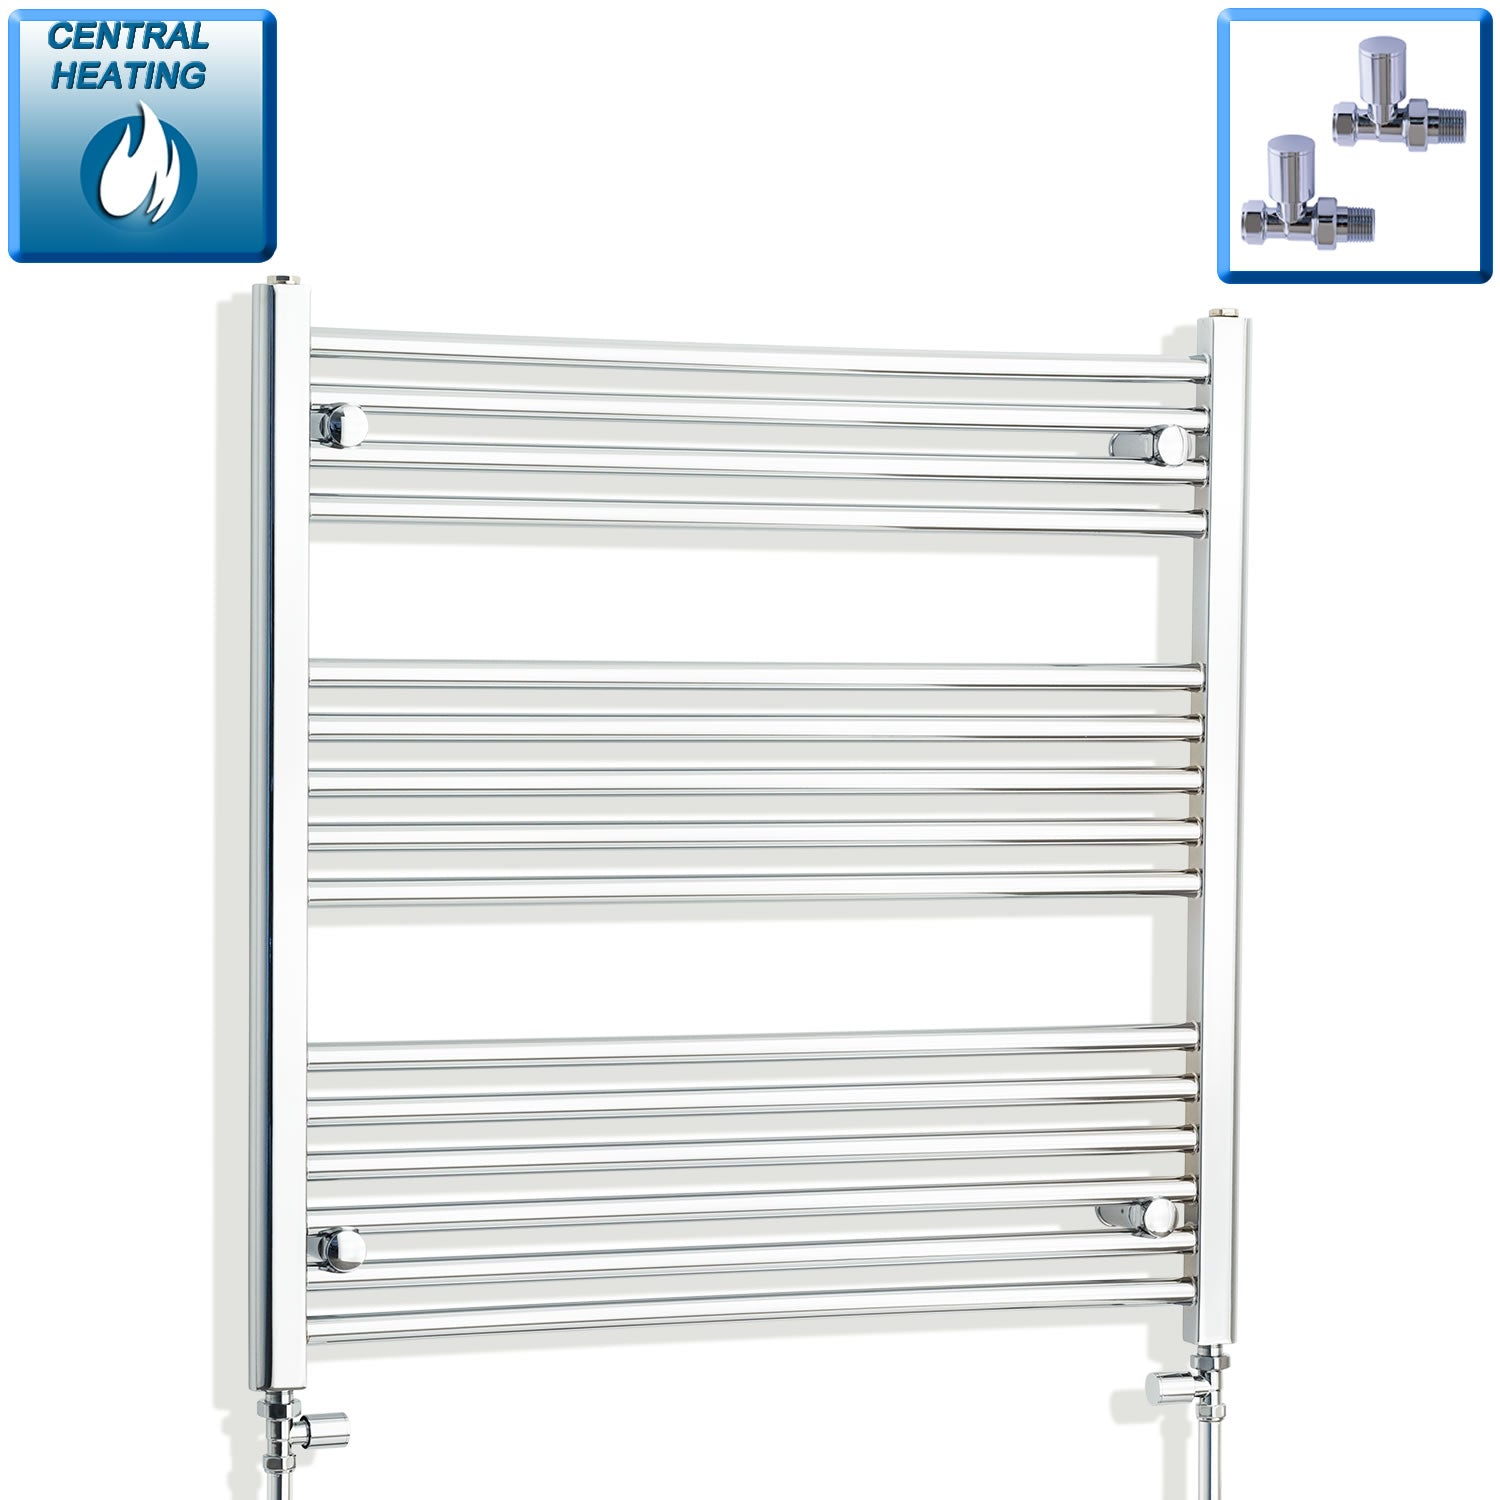 750mm Wide 800mm High Flat Chrome Heated Towel Rail Radiator HTR,With Straight Valve